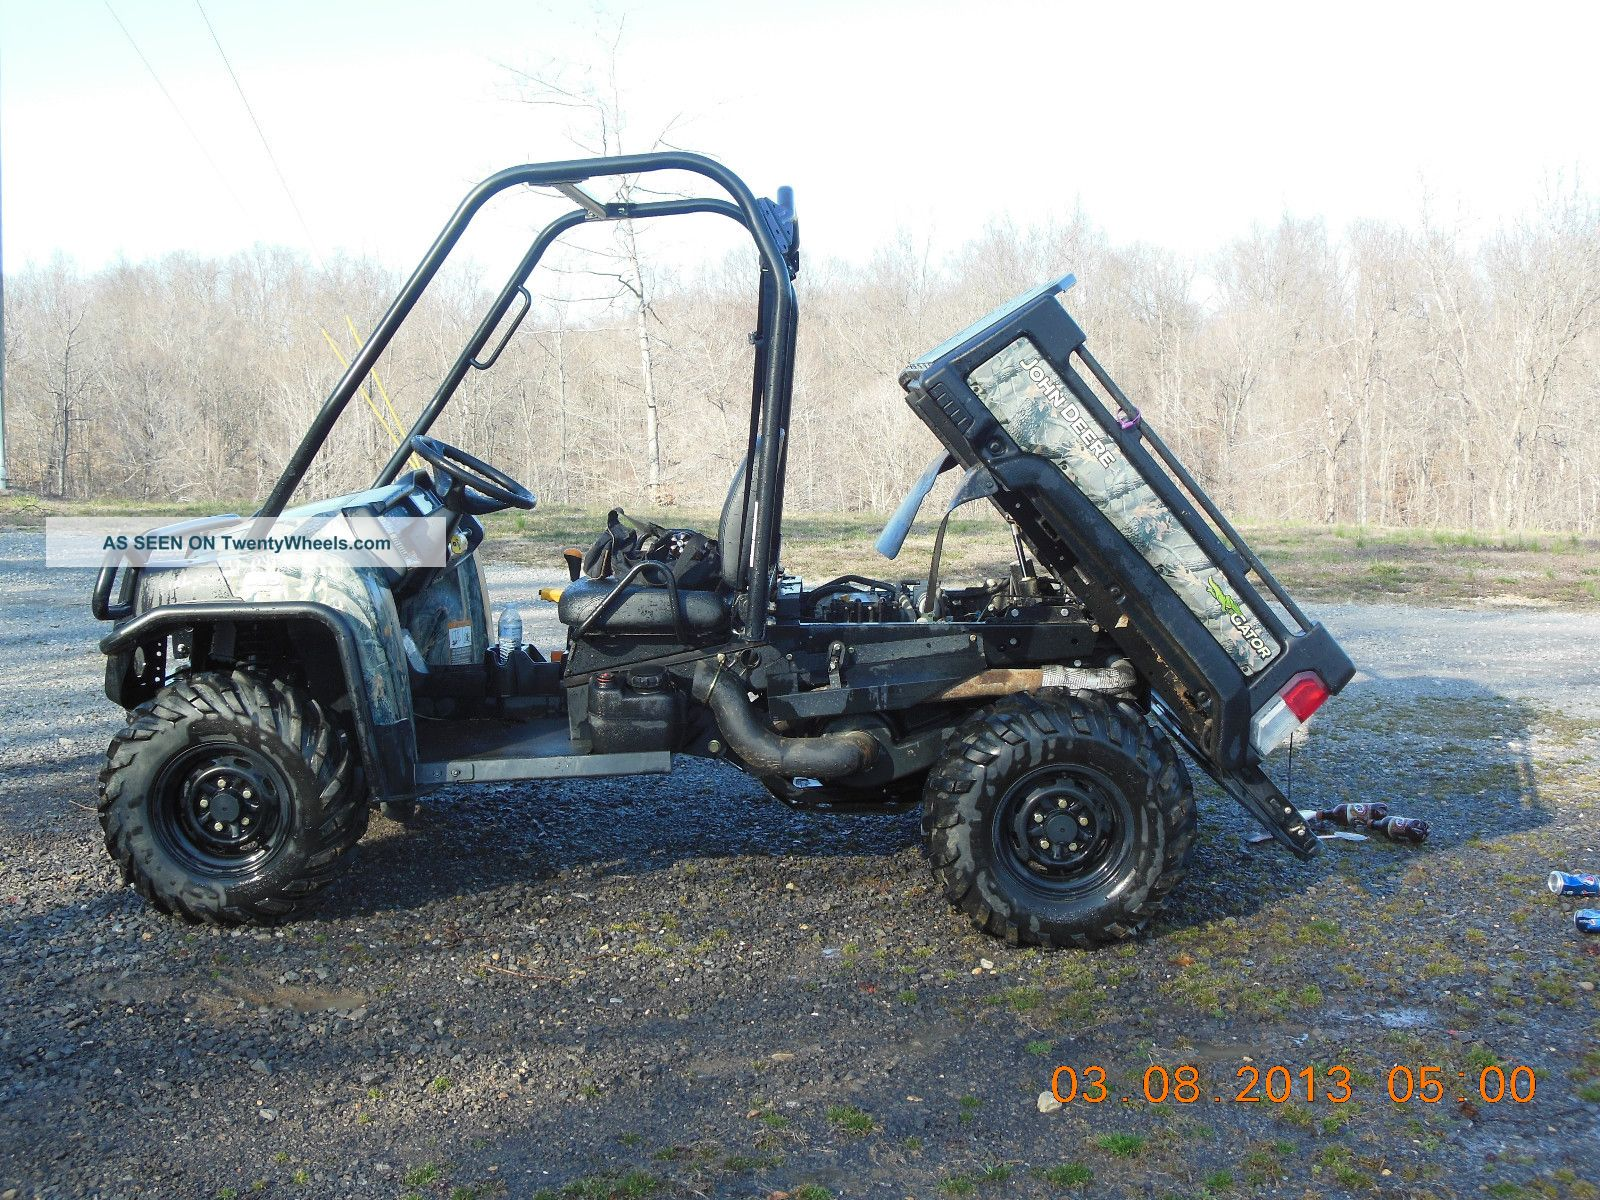 John Deer Gator 825i 4x4 Utility Vehicles photo